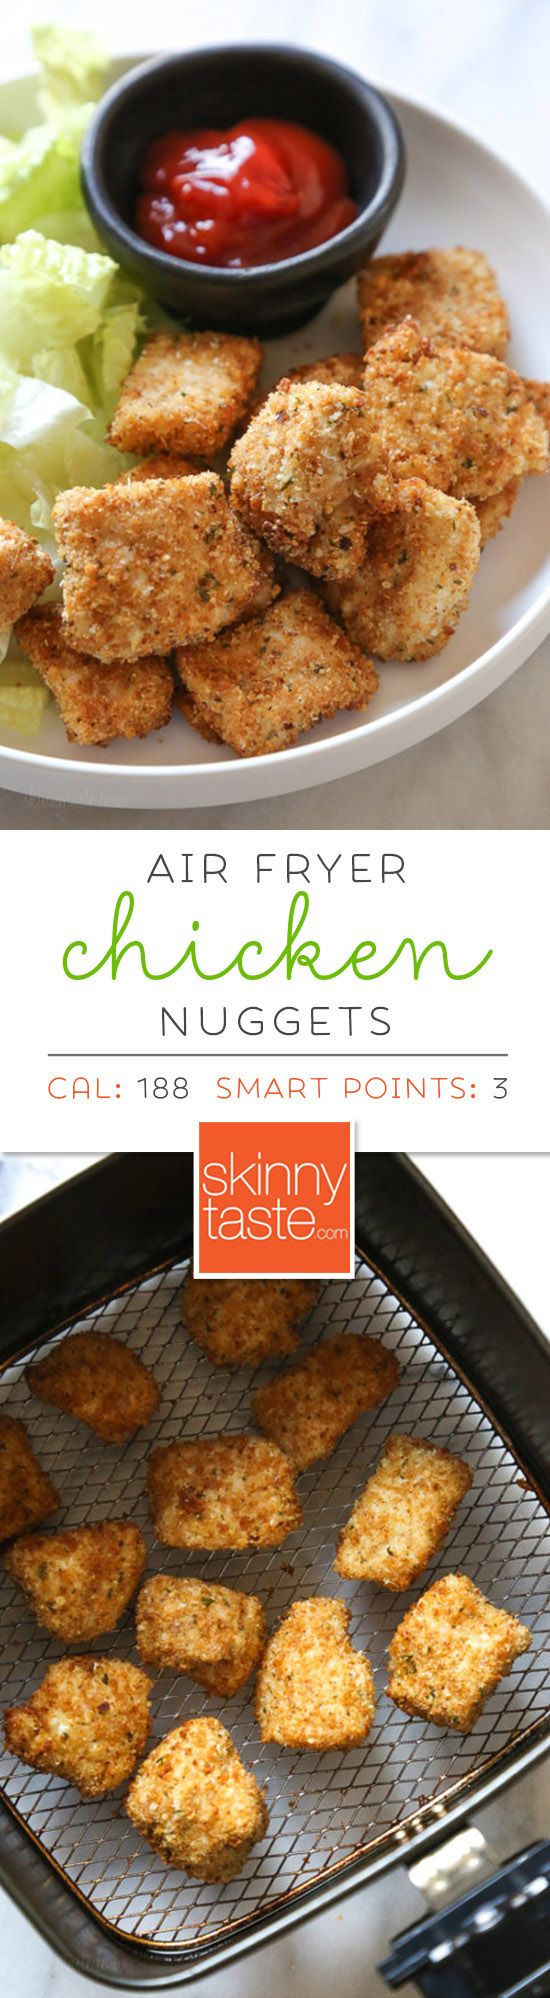 Air Fryer Chicken Nuggets Recipe Food recipes, Air